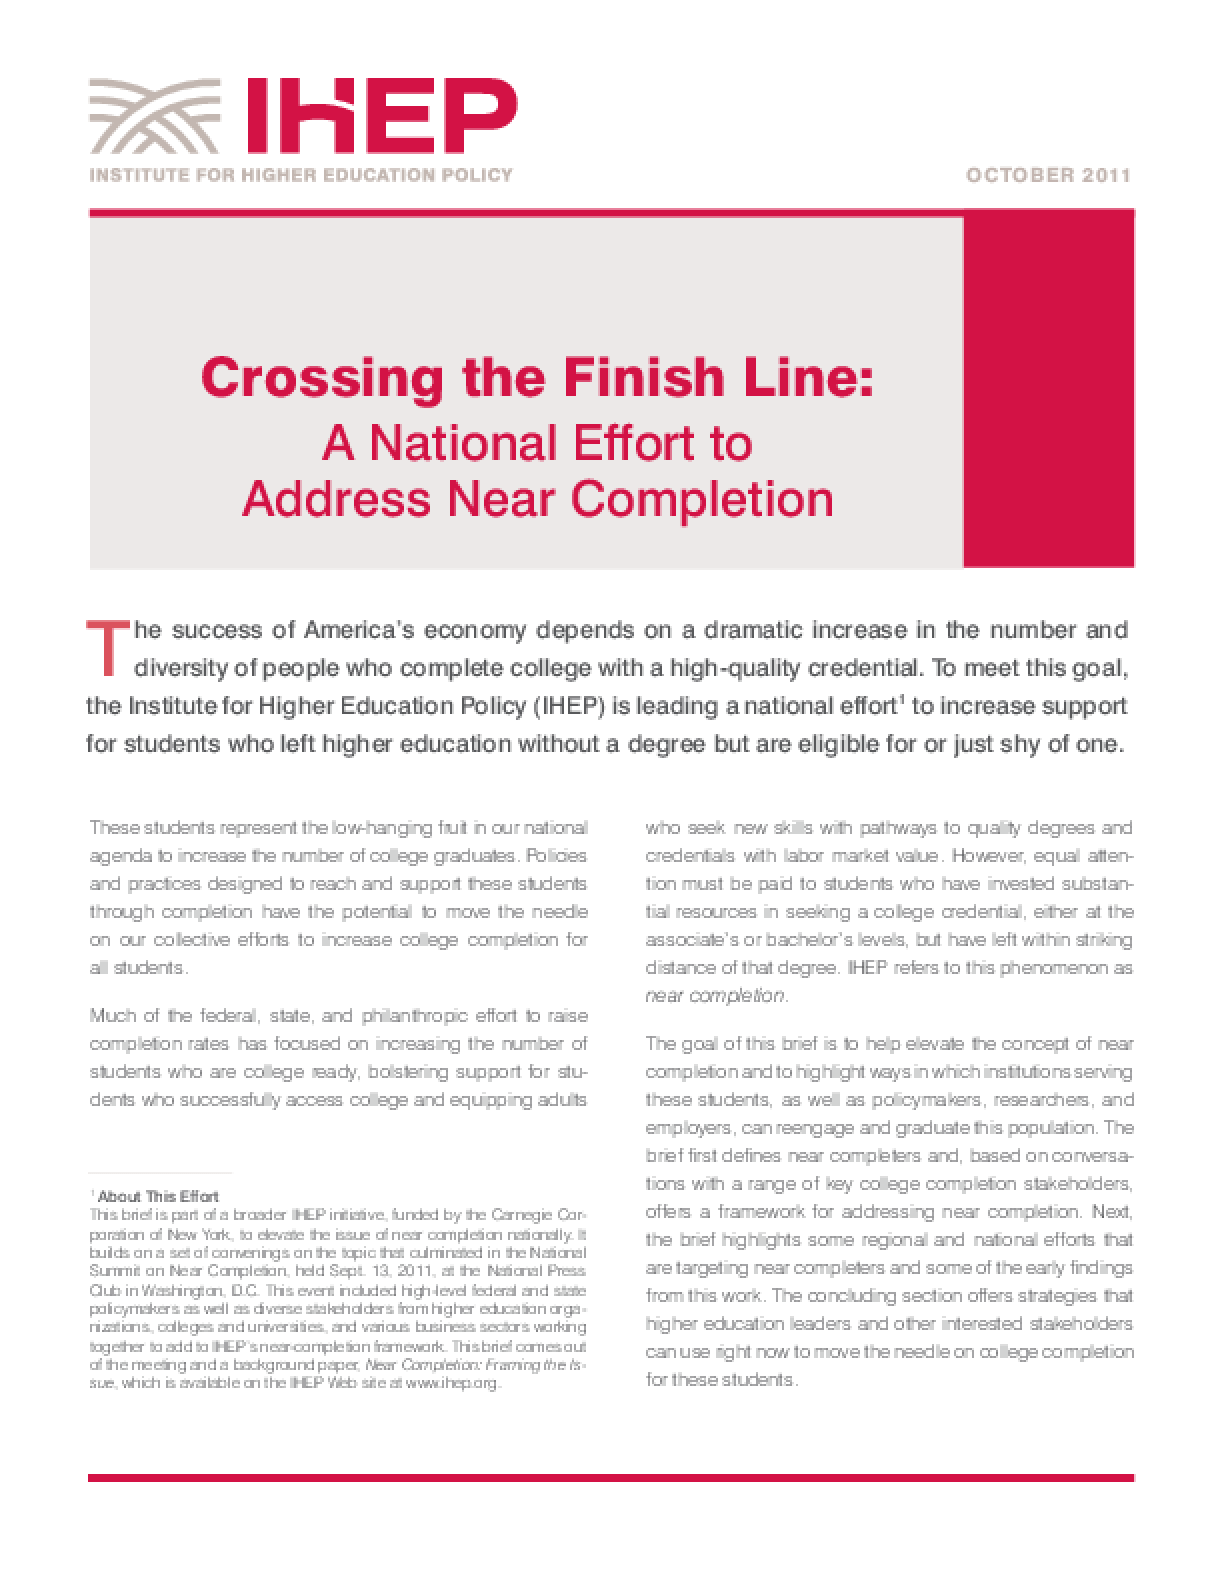 Crossing the Finish Line: A National Effort to Address Near Completion